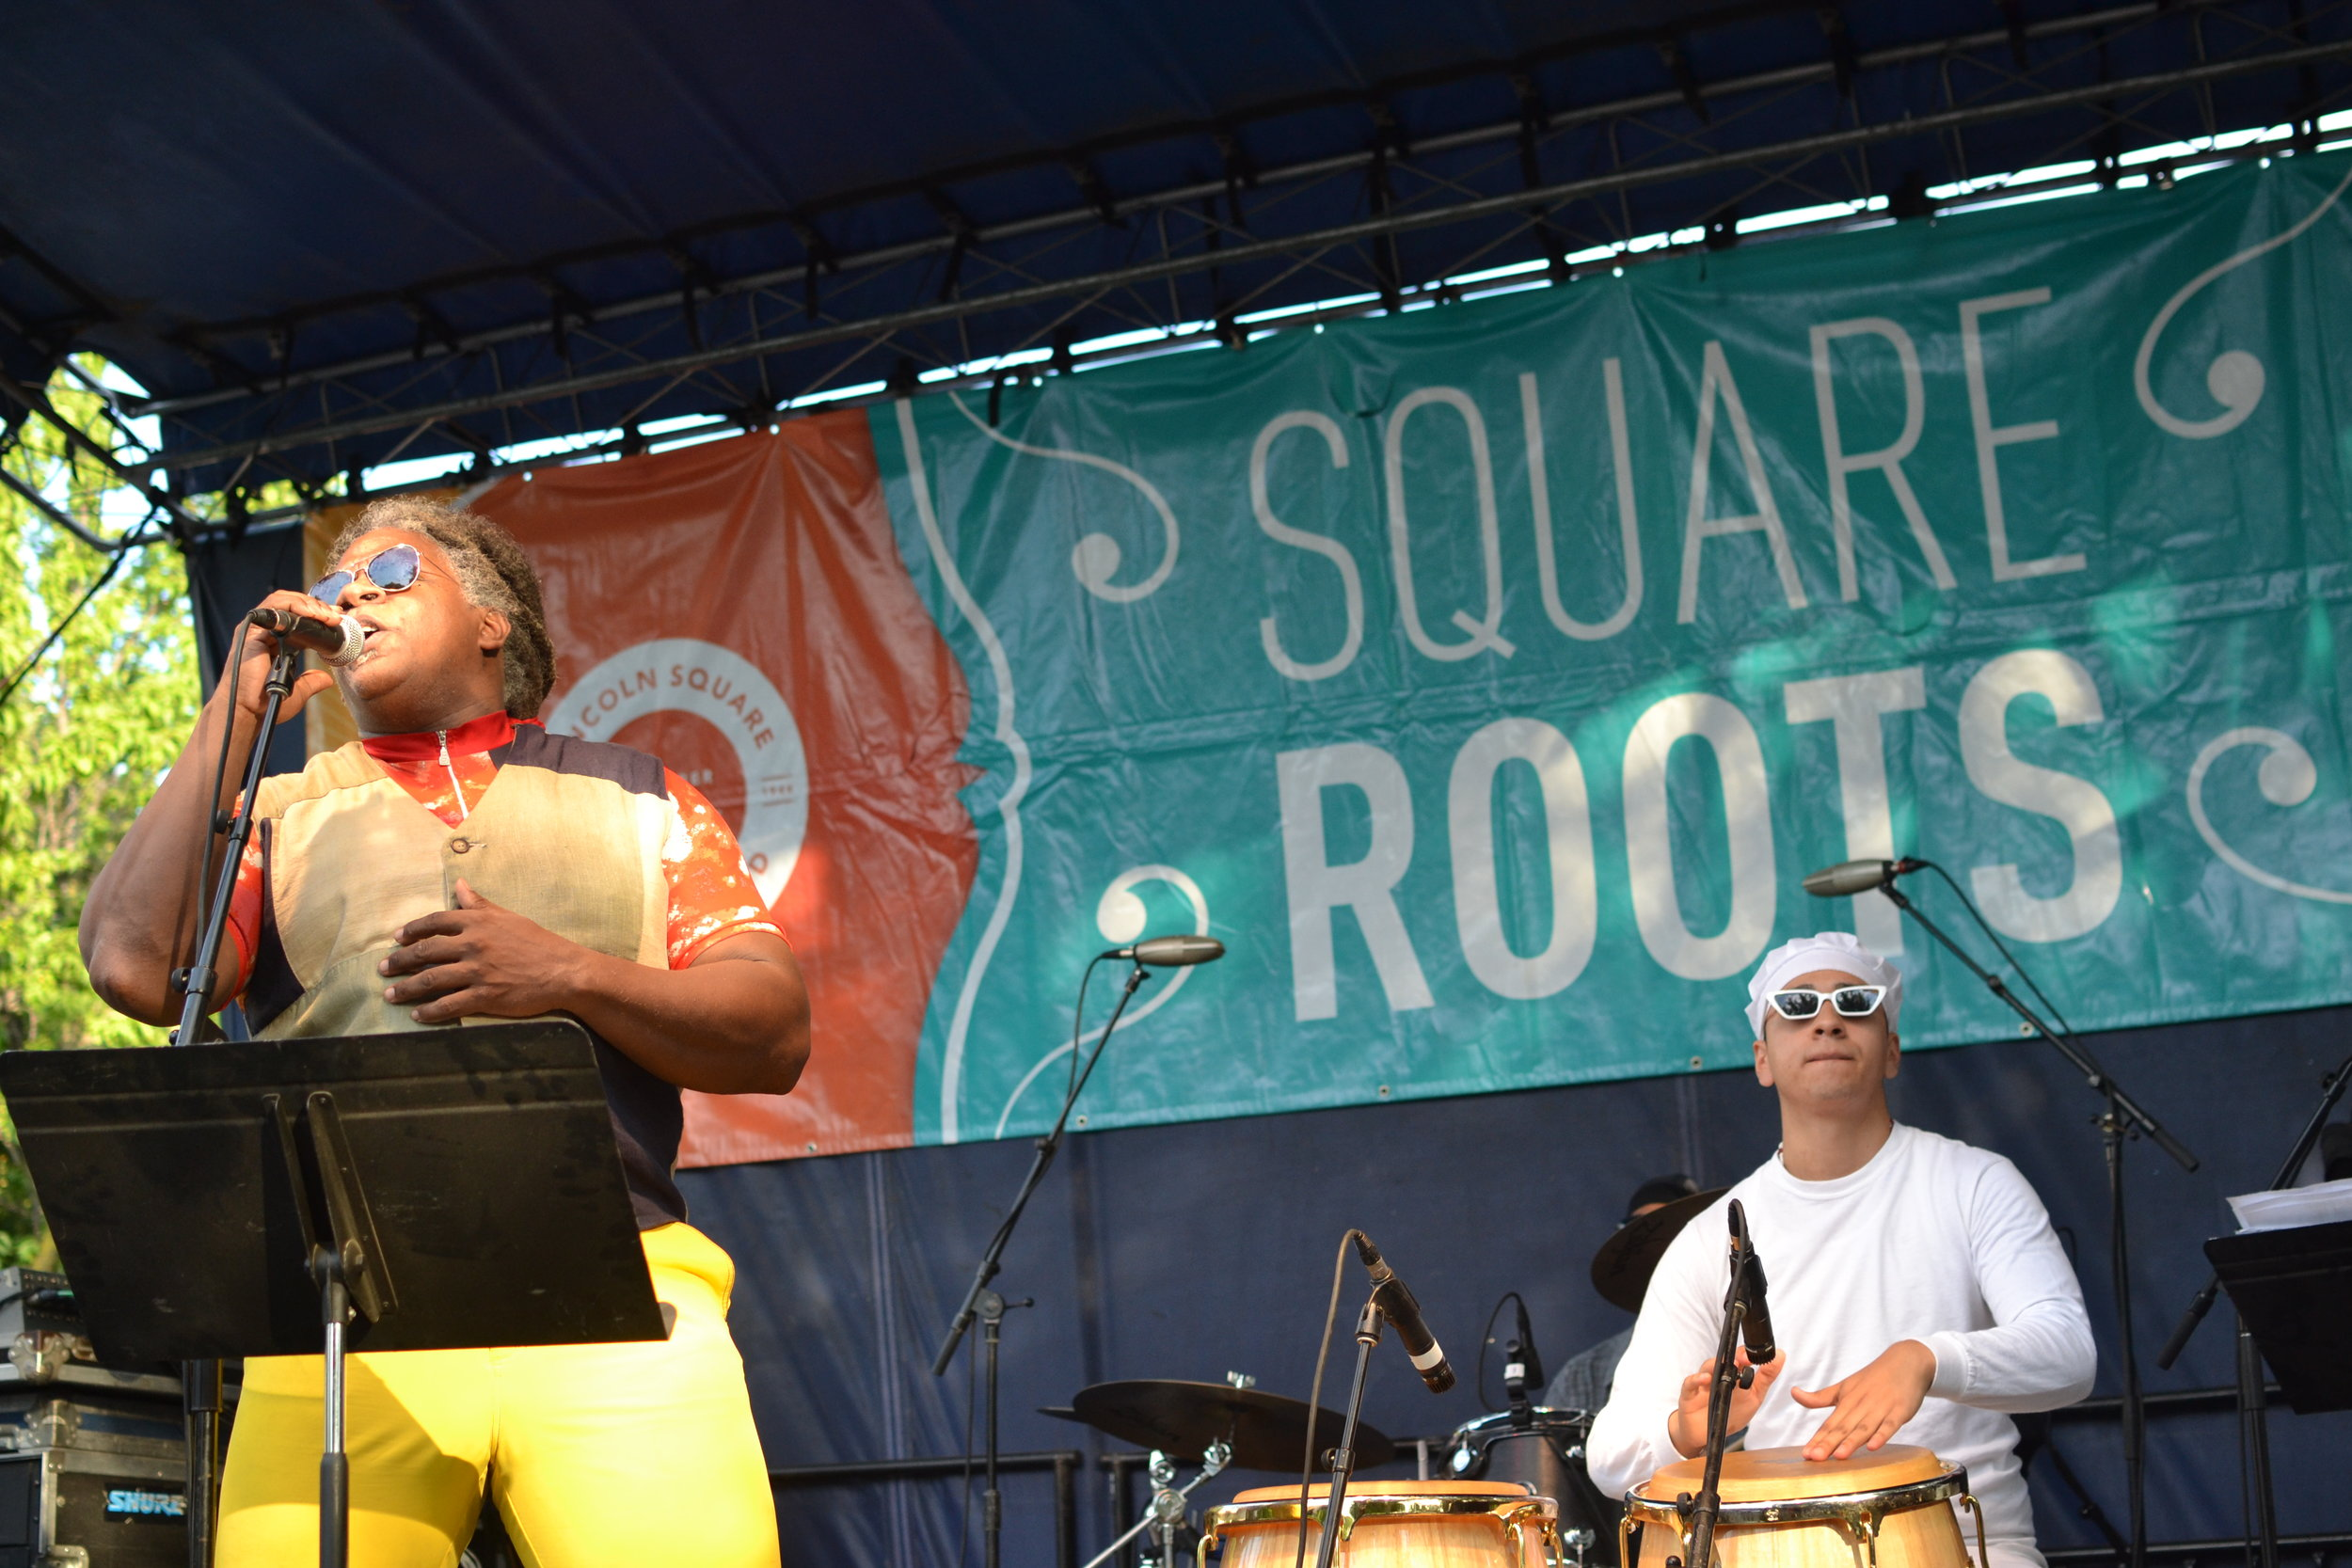 square roots Fest - Lincoln SquareJuly 5 - July 7